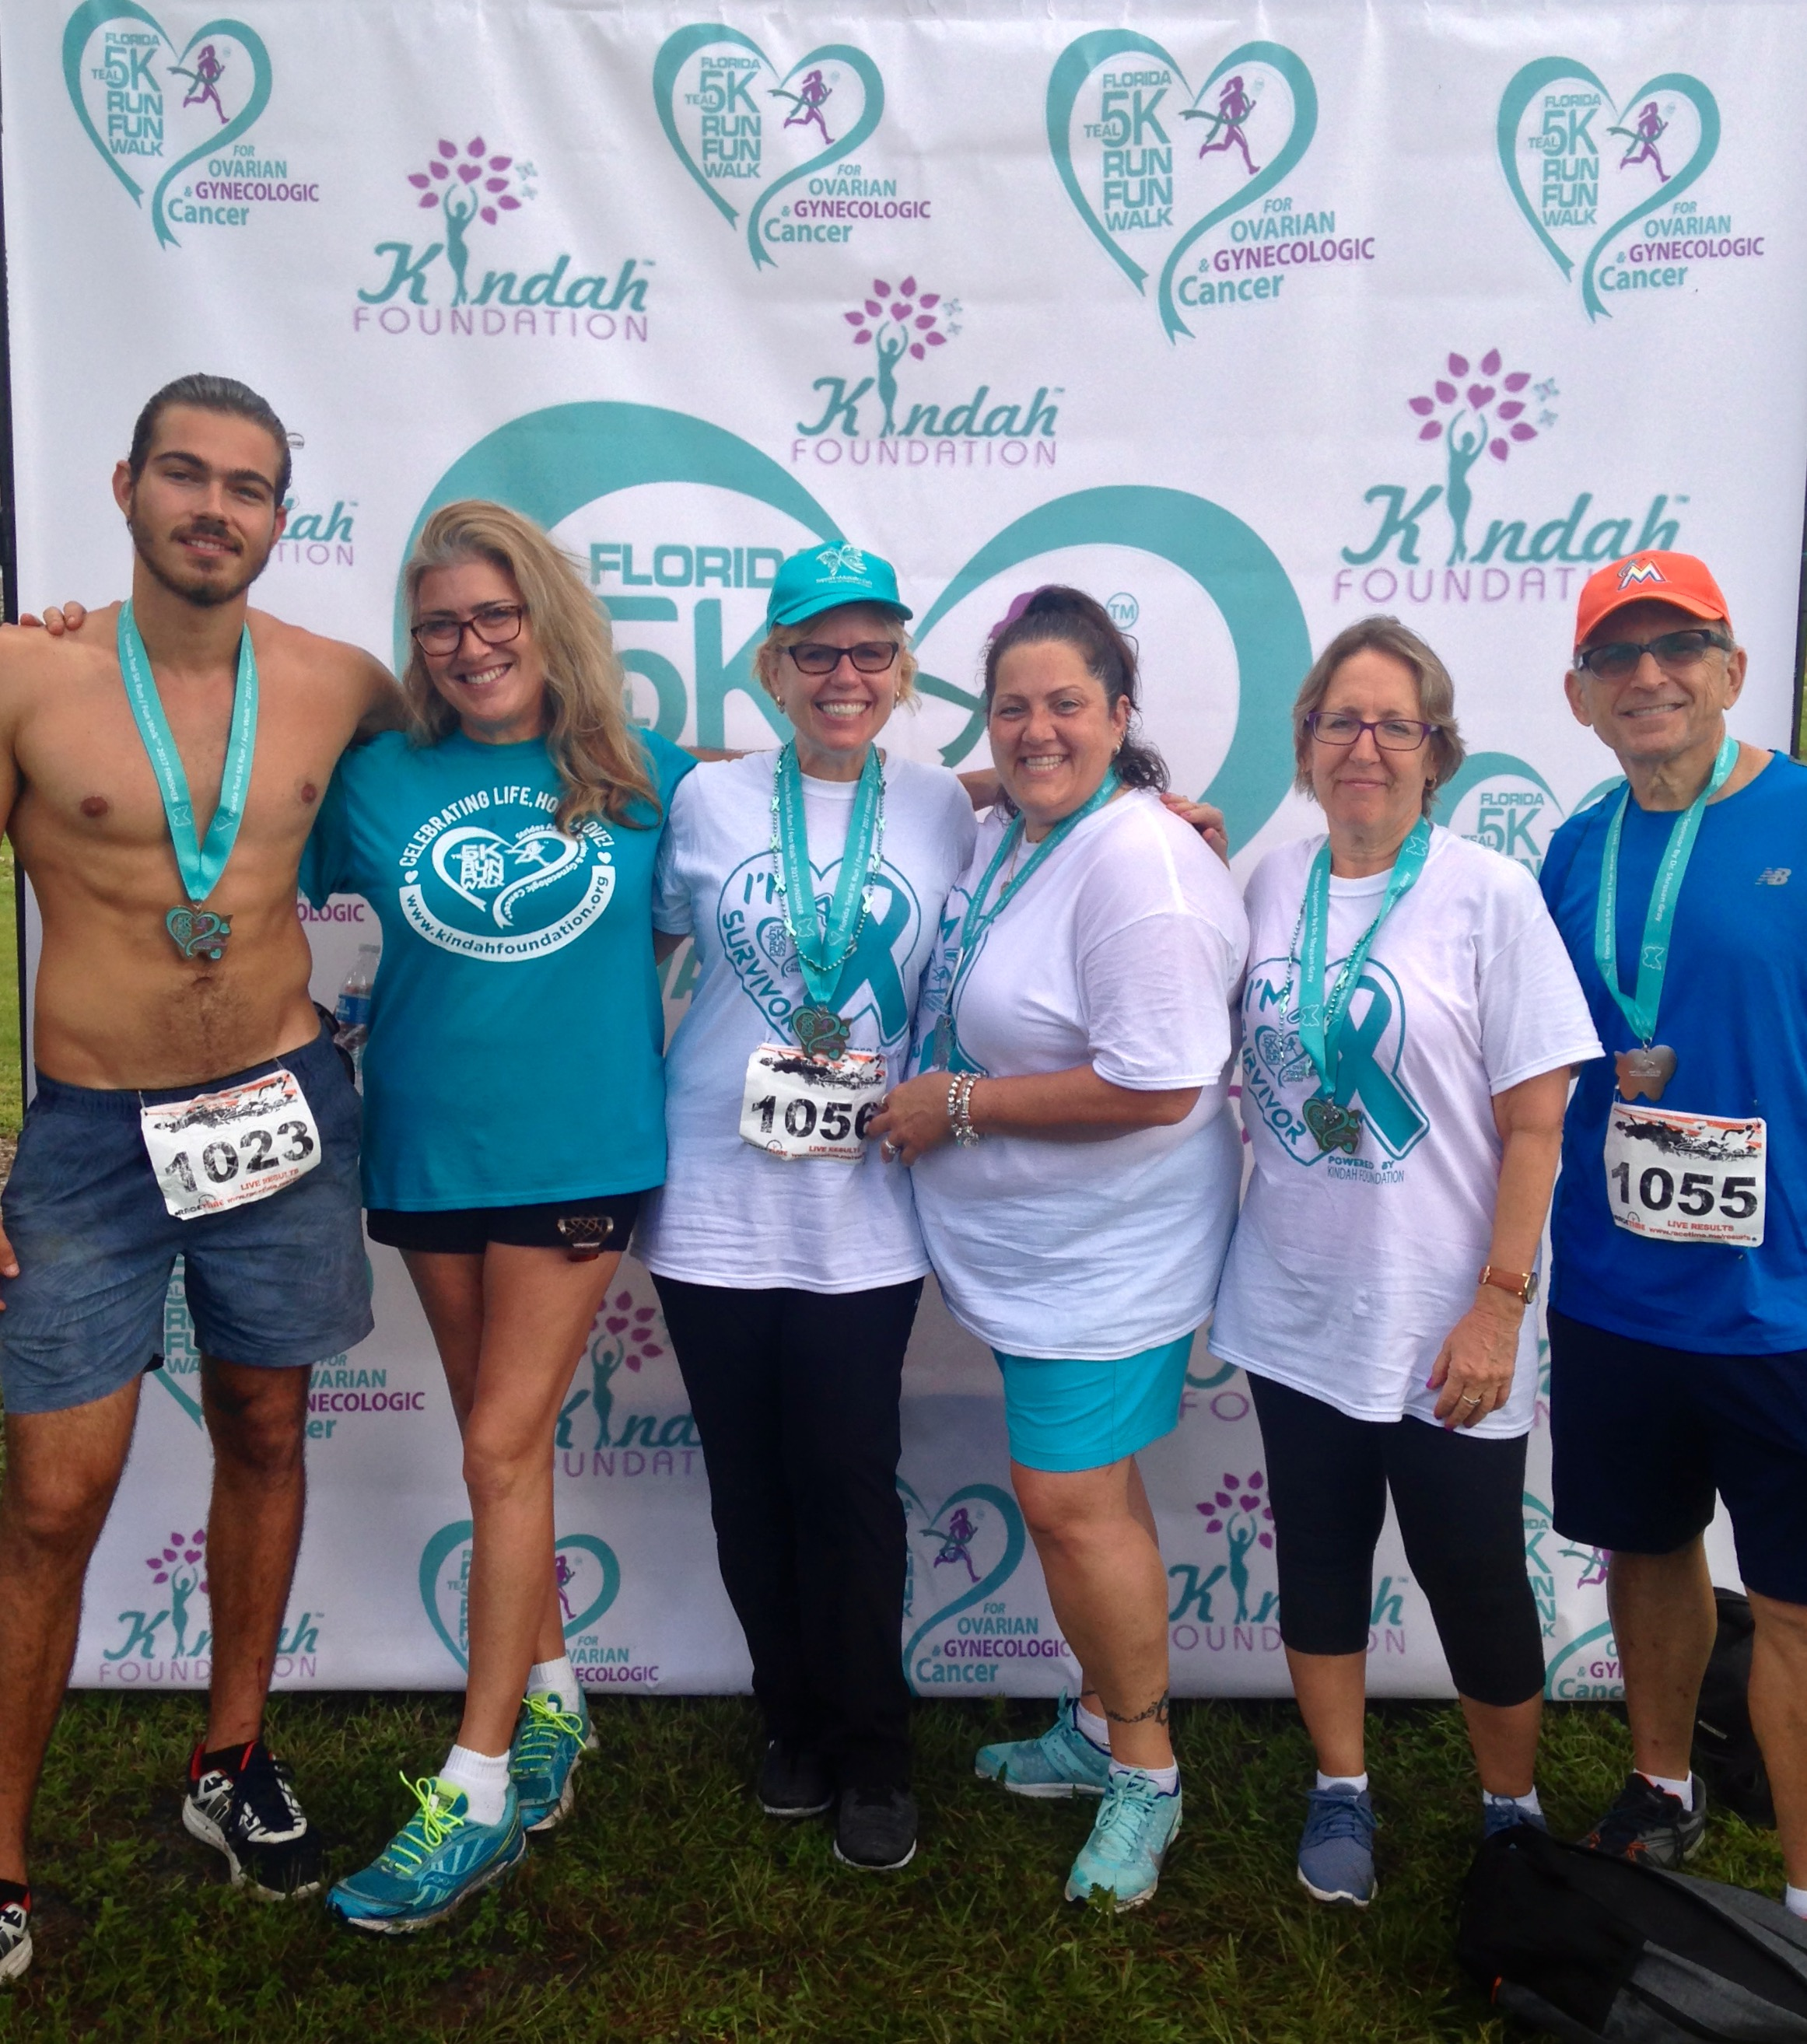 FullSizeRender 008 - Florida Teal 5K Run & Fun